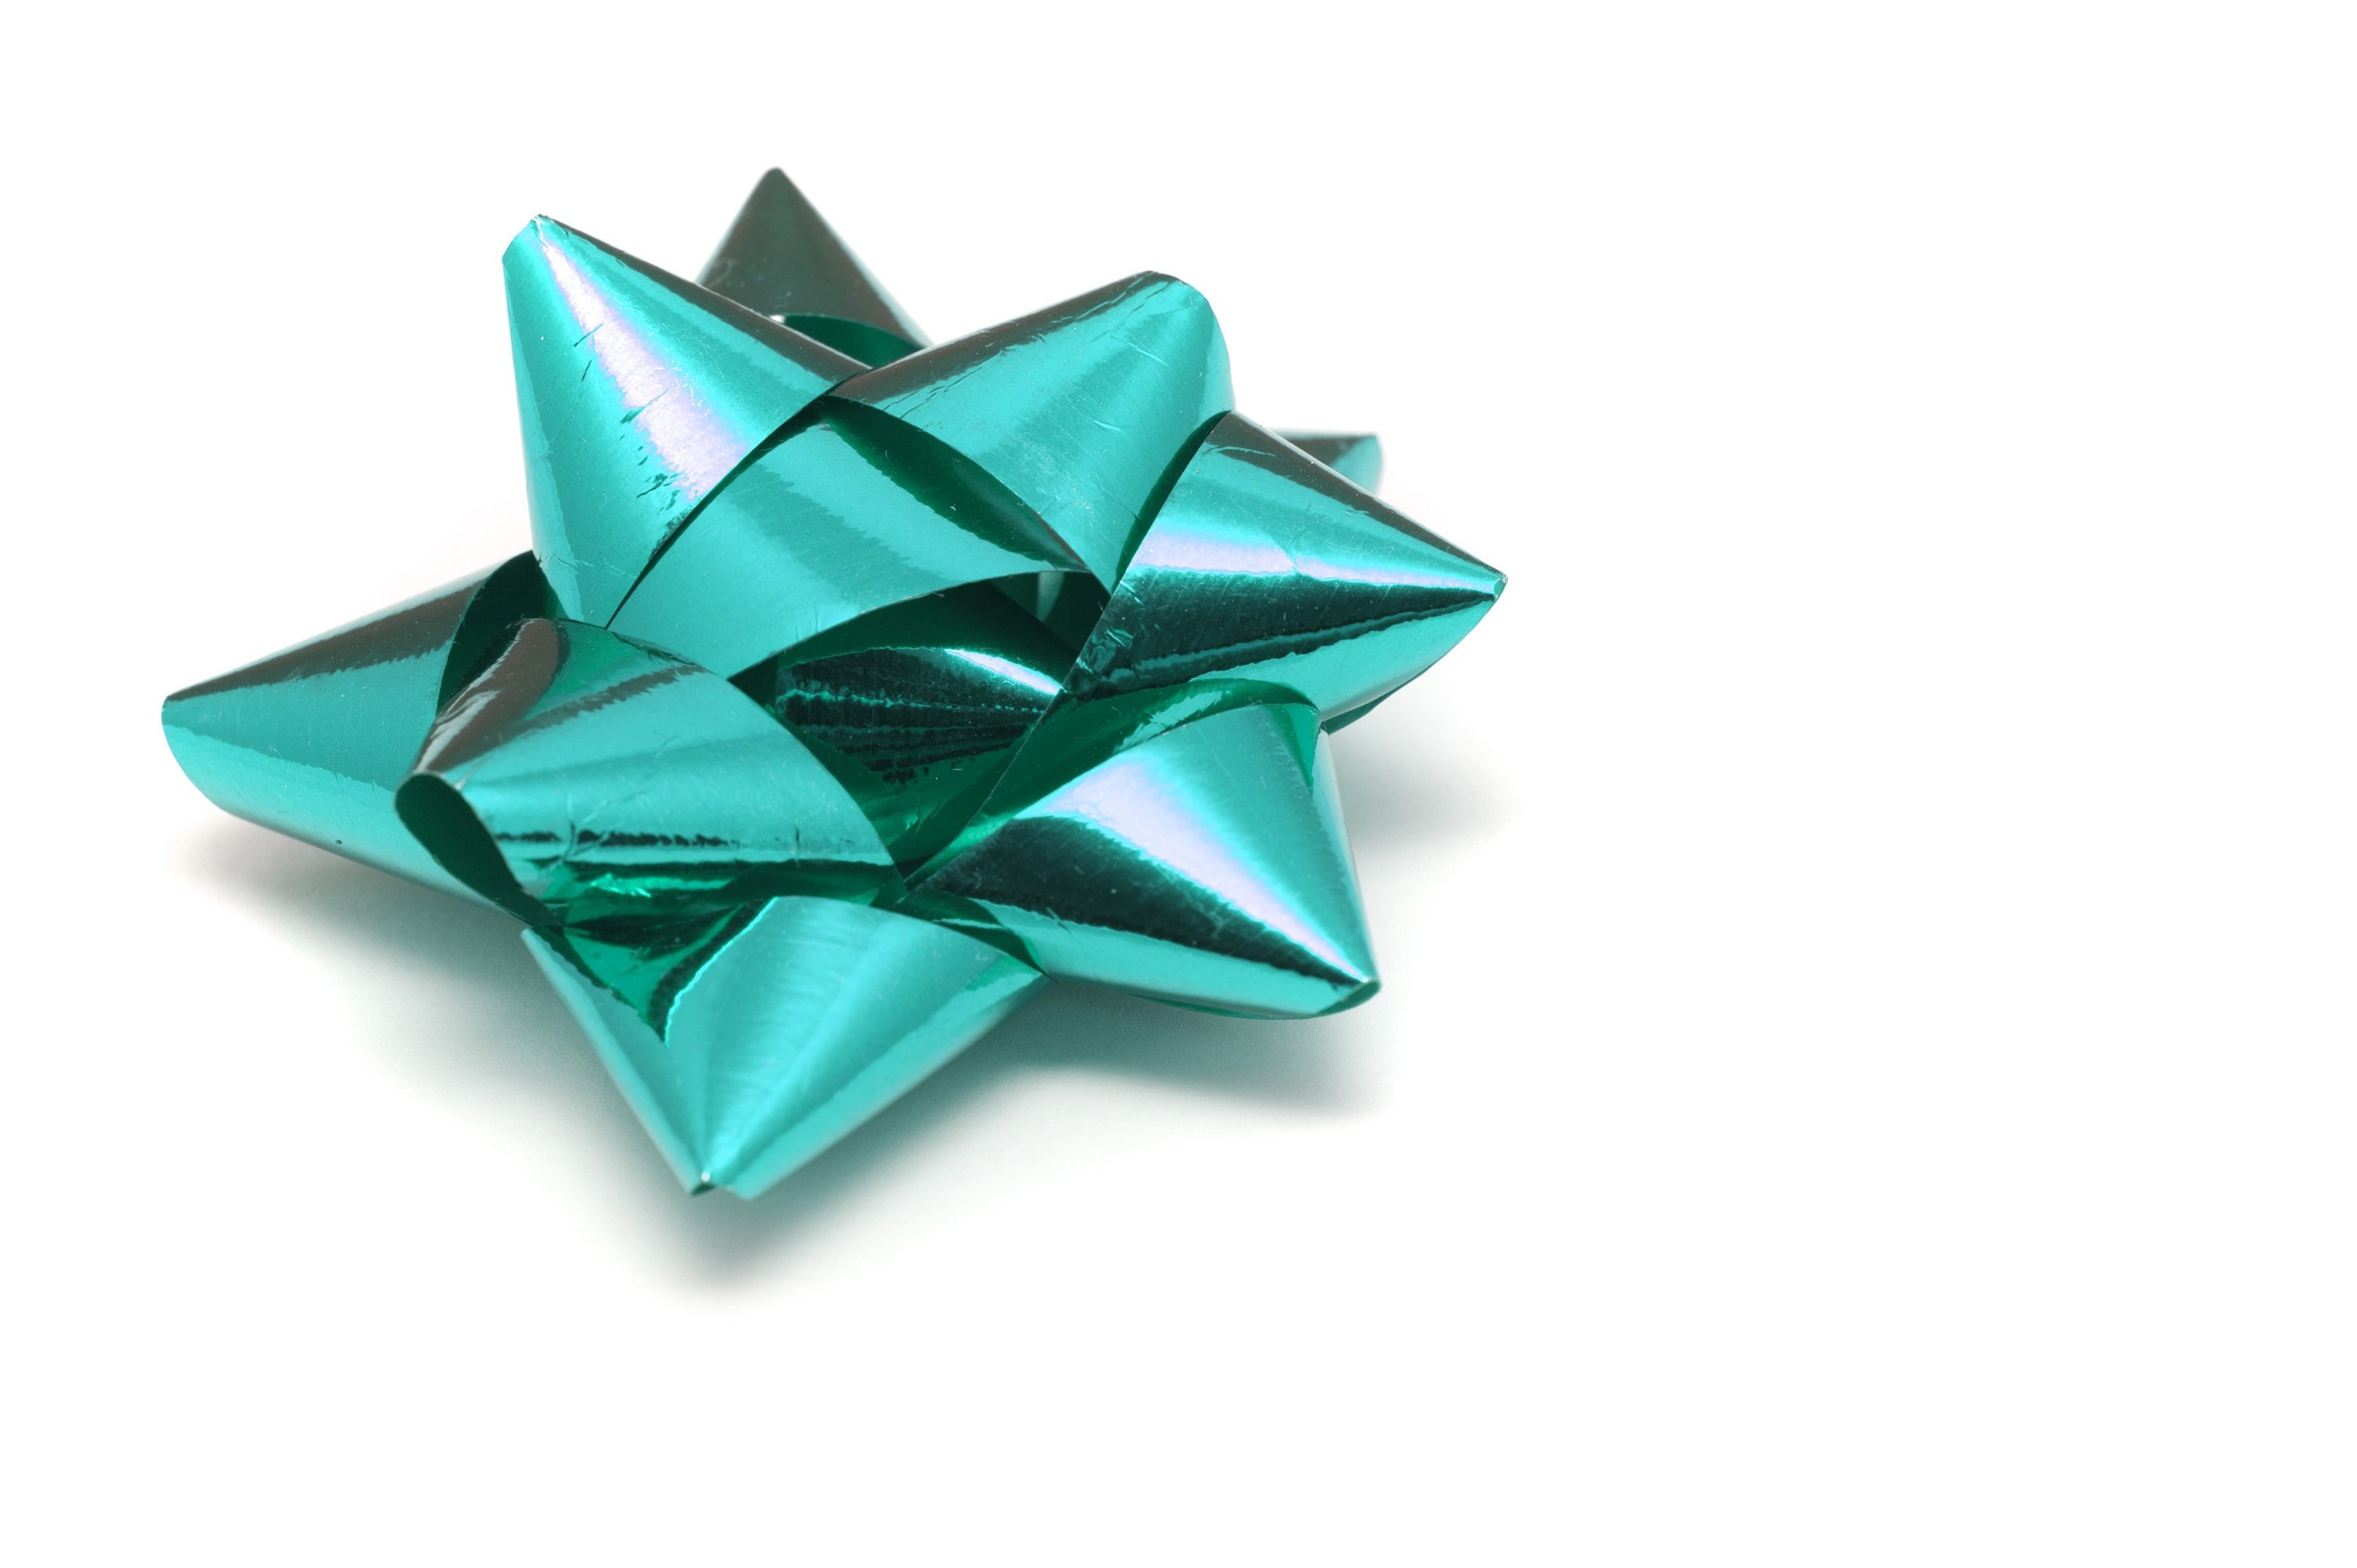 Ornate cyan bow made from metallic foil ribbon for gift wrapping and decorating seasonal and Christmas gifts for loved ones on white with copyspace